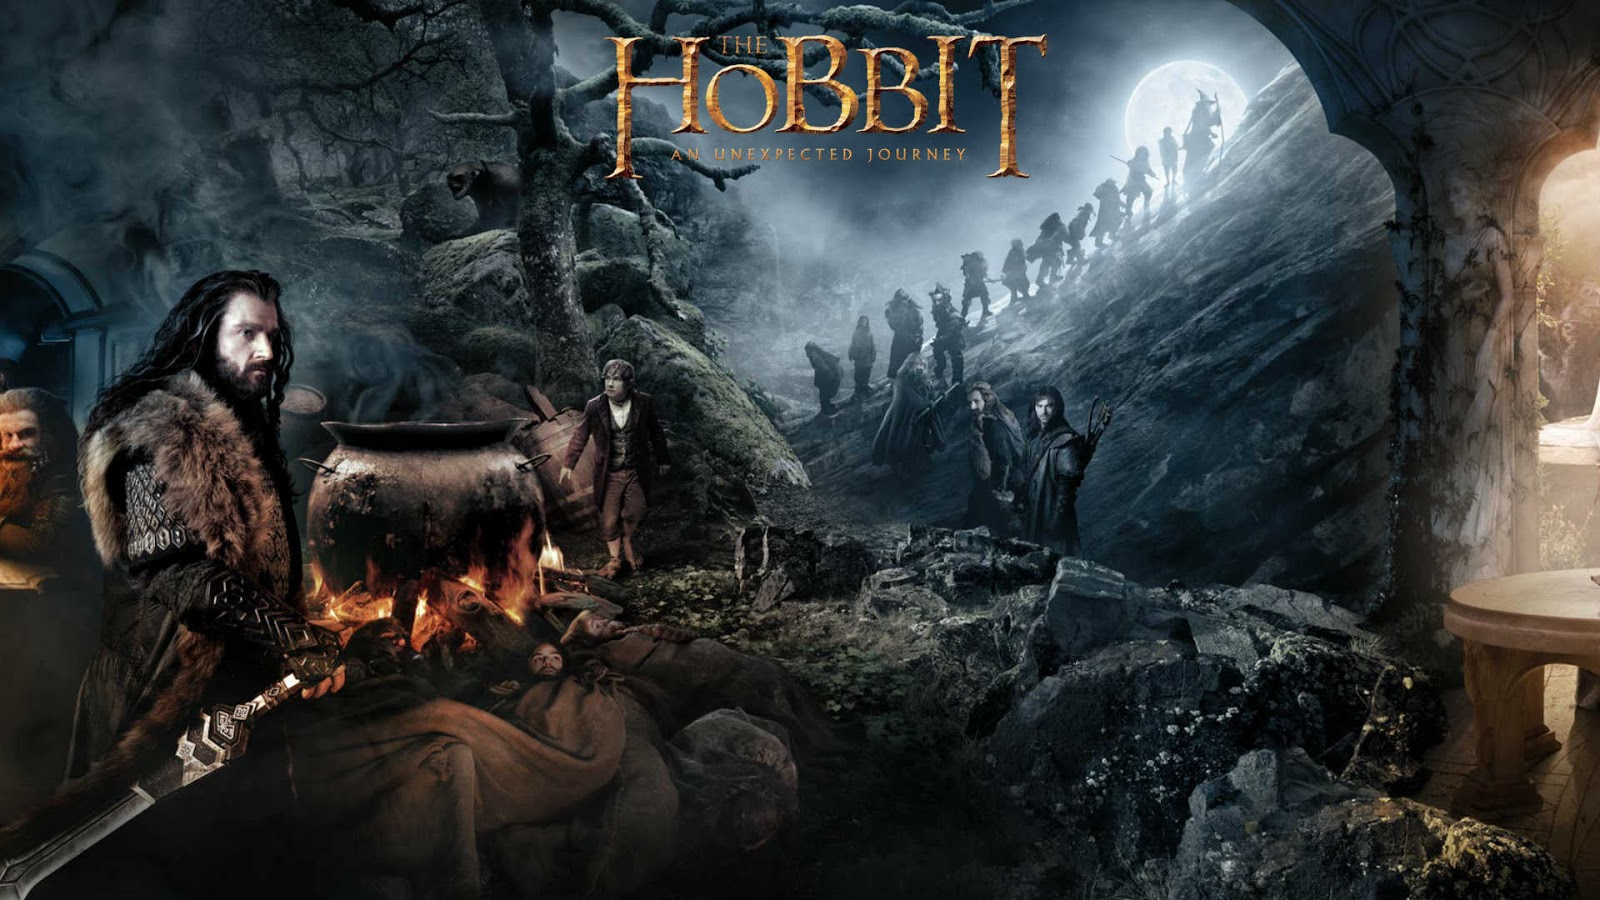 the hobbit movie wallpapers - photo #23